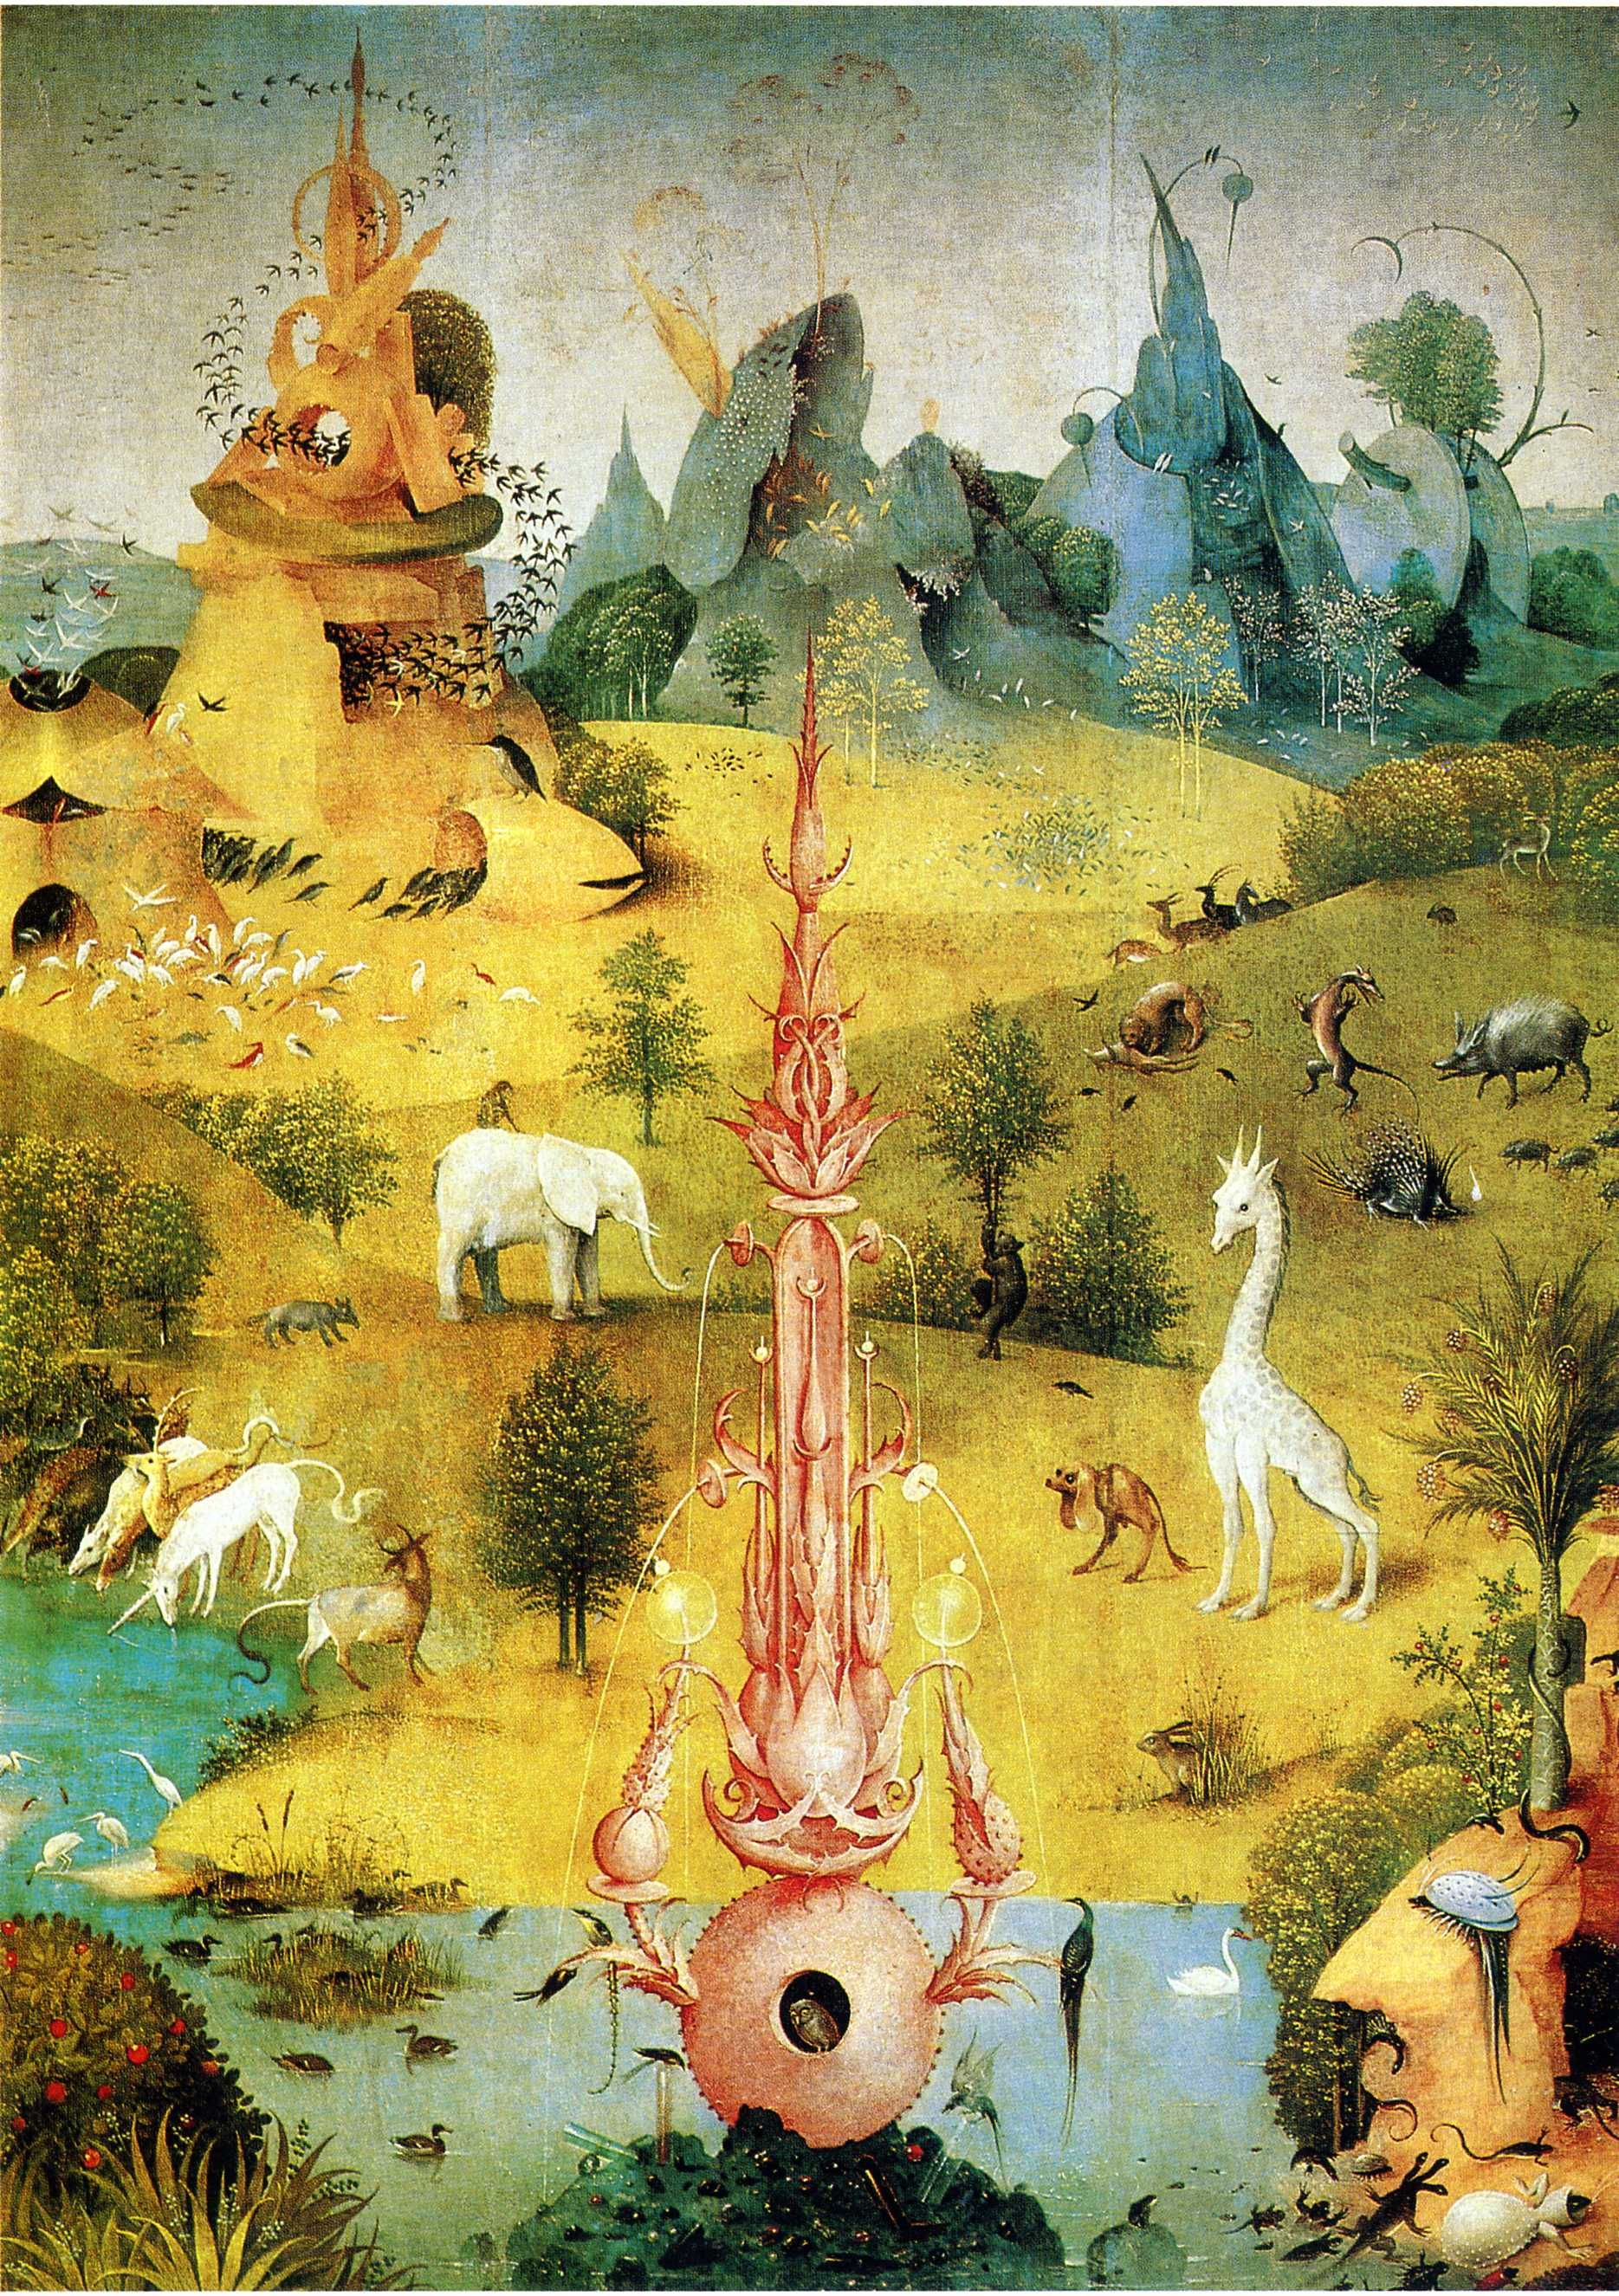 Hieronymus Bosch , The Garden of Earthly Delights (1490,1510